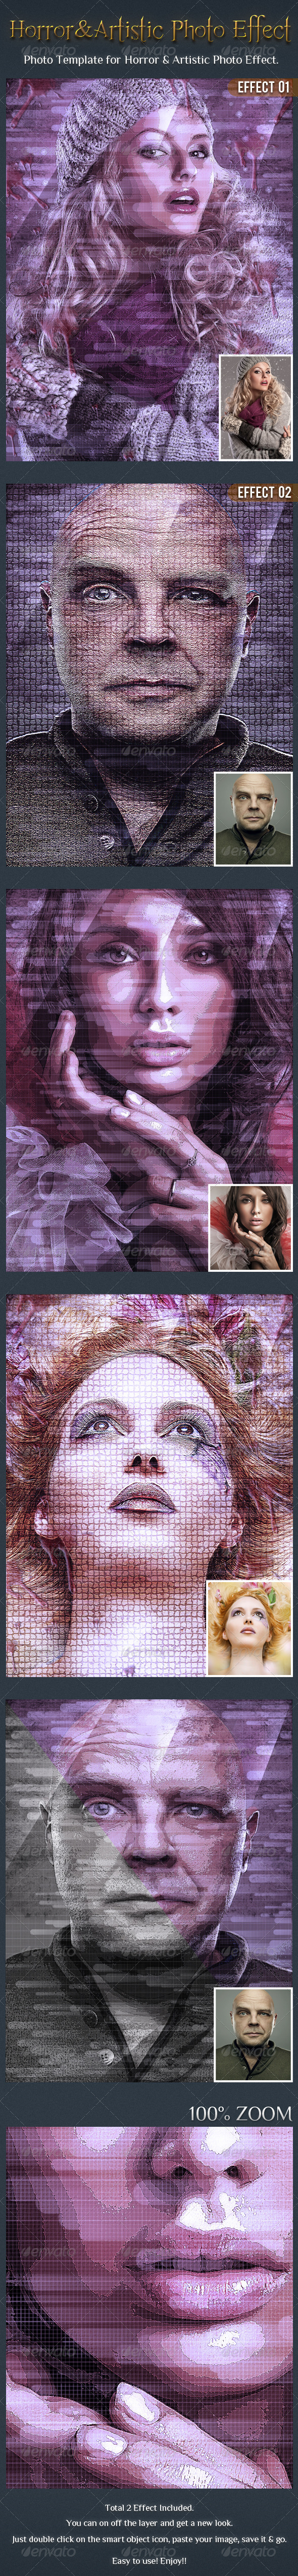 GraphicRiver Horror & Artistic Photo Effect Template 6381641